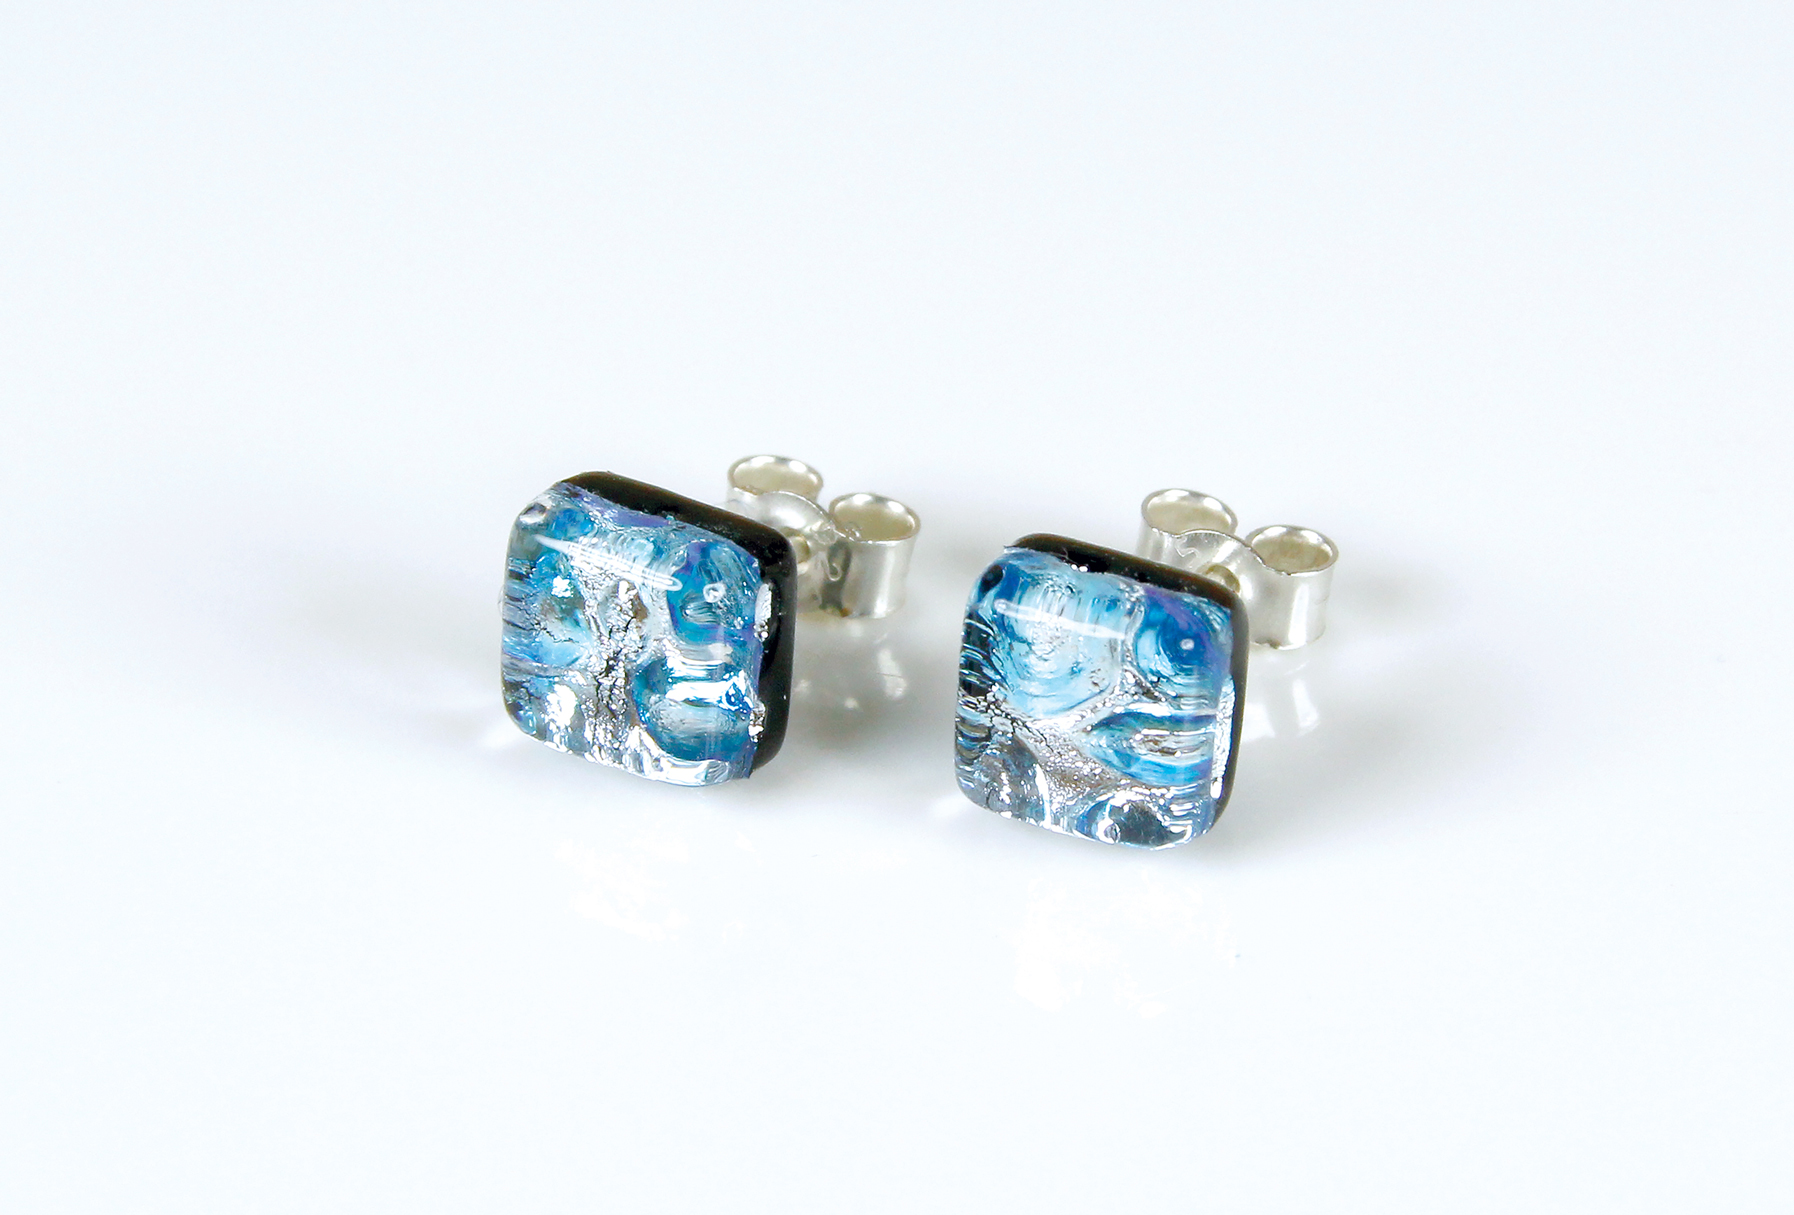 Dichroic glass jewellery uk, handmade stud earrings with silver/ice blue dichroic glass, square, sterling glass 7-10mm, silver posts.